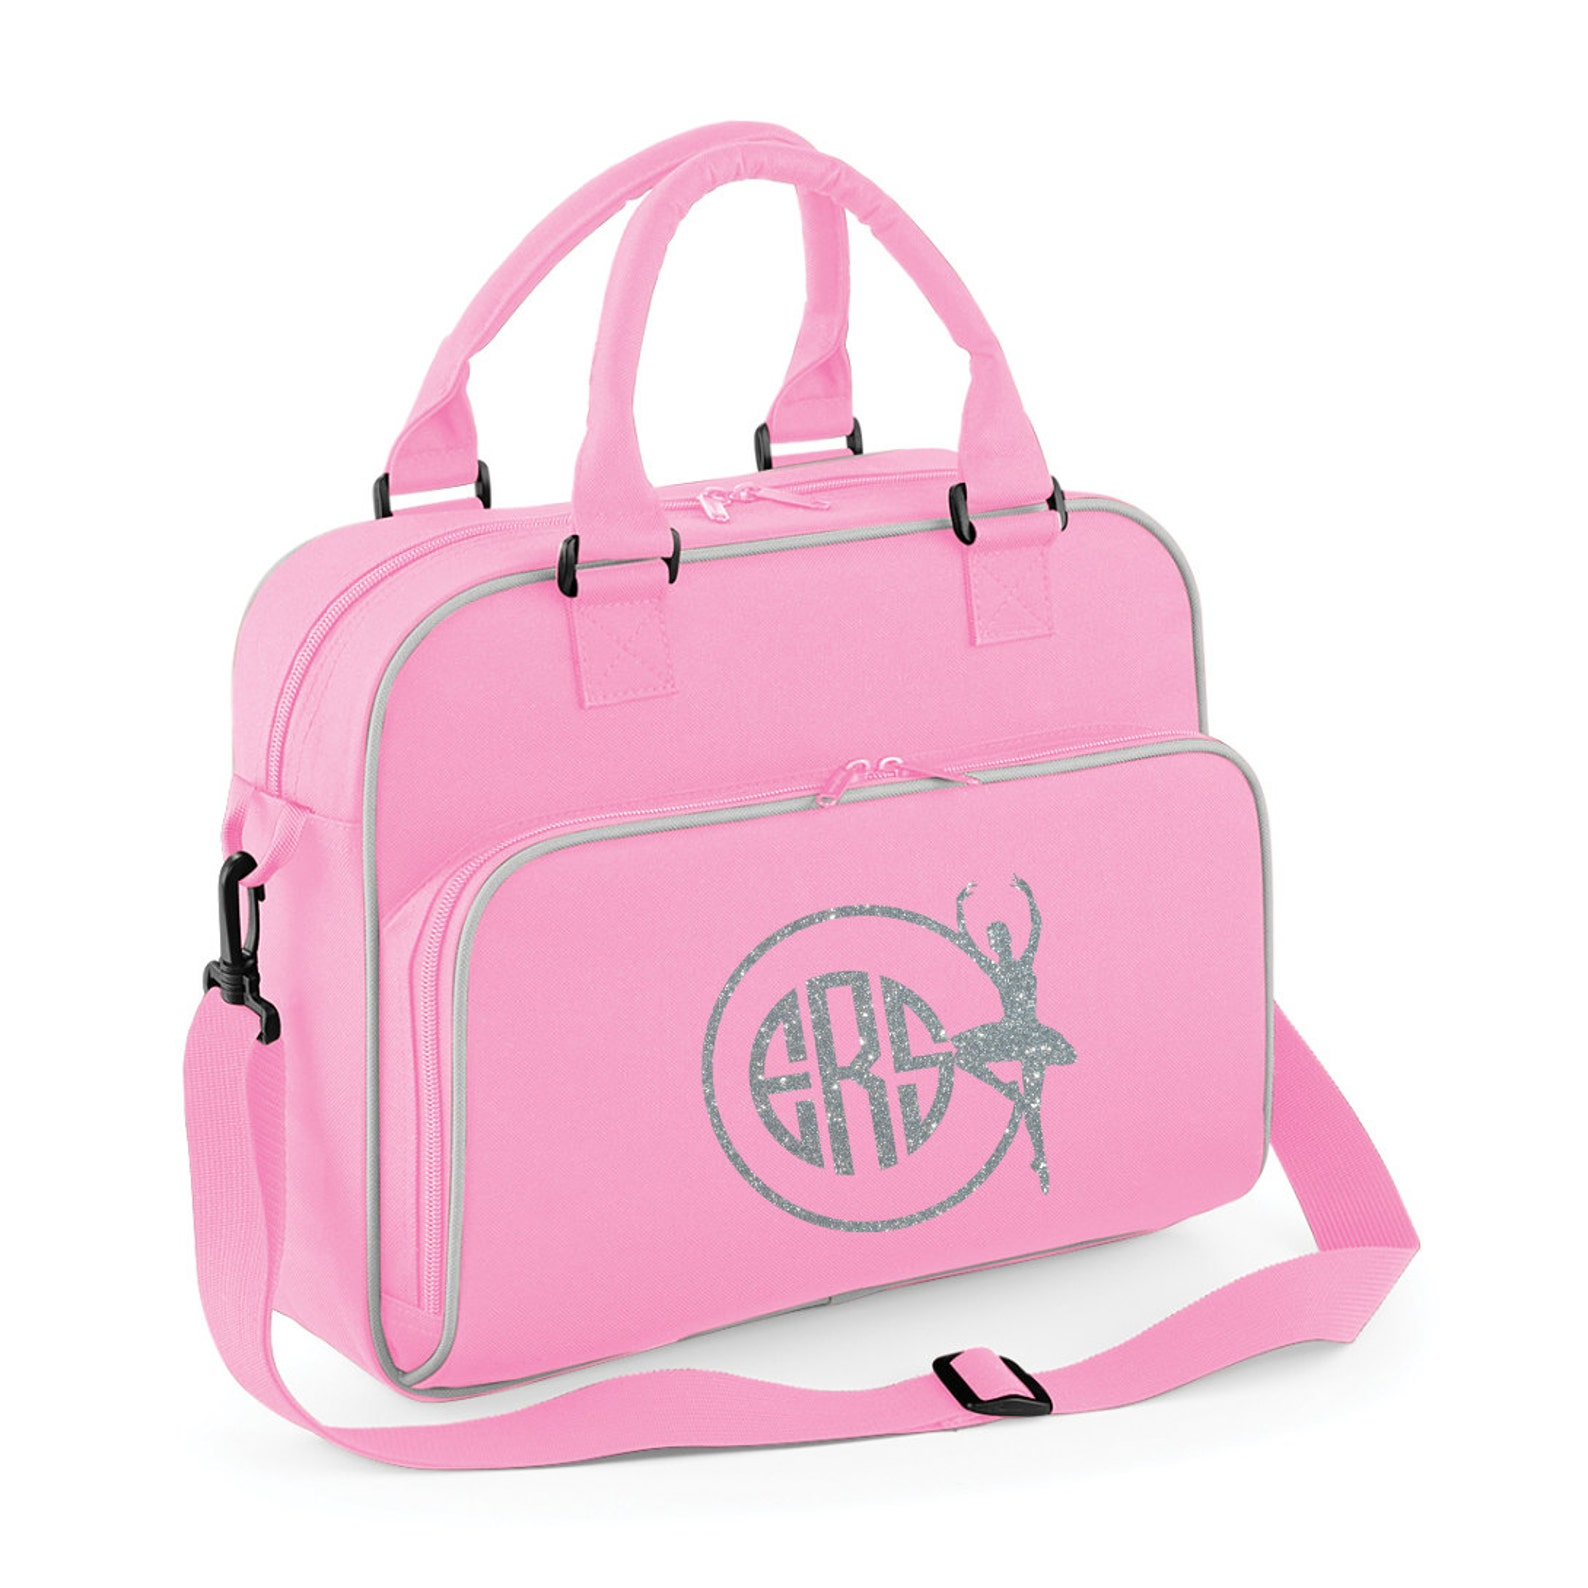 personalised junior ballet dance bag- glitter print with ballet image and monogram name- image 2